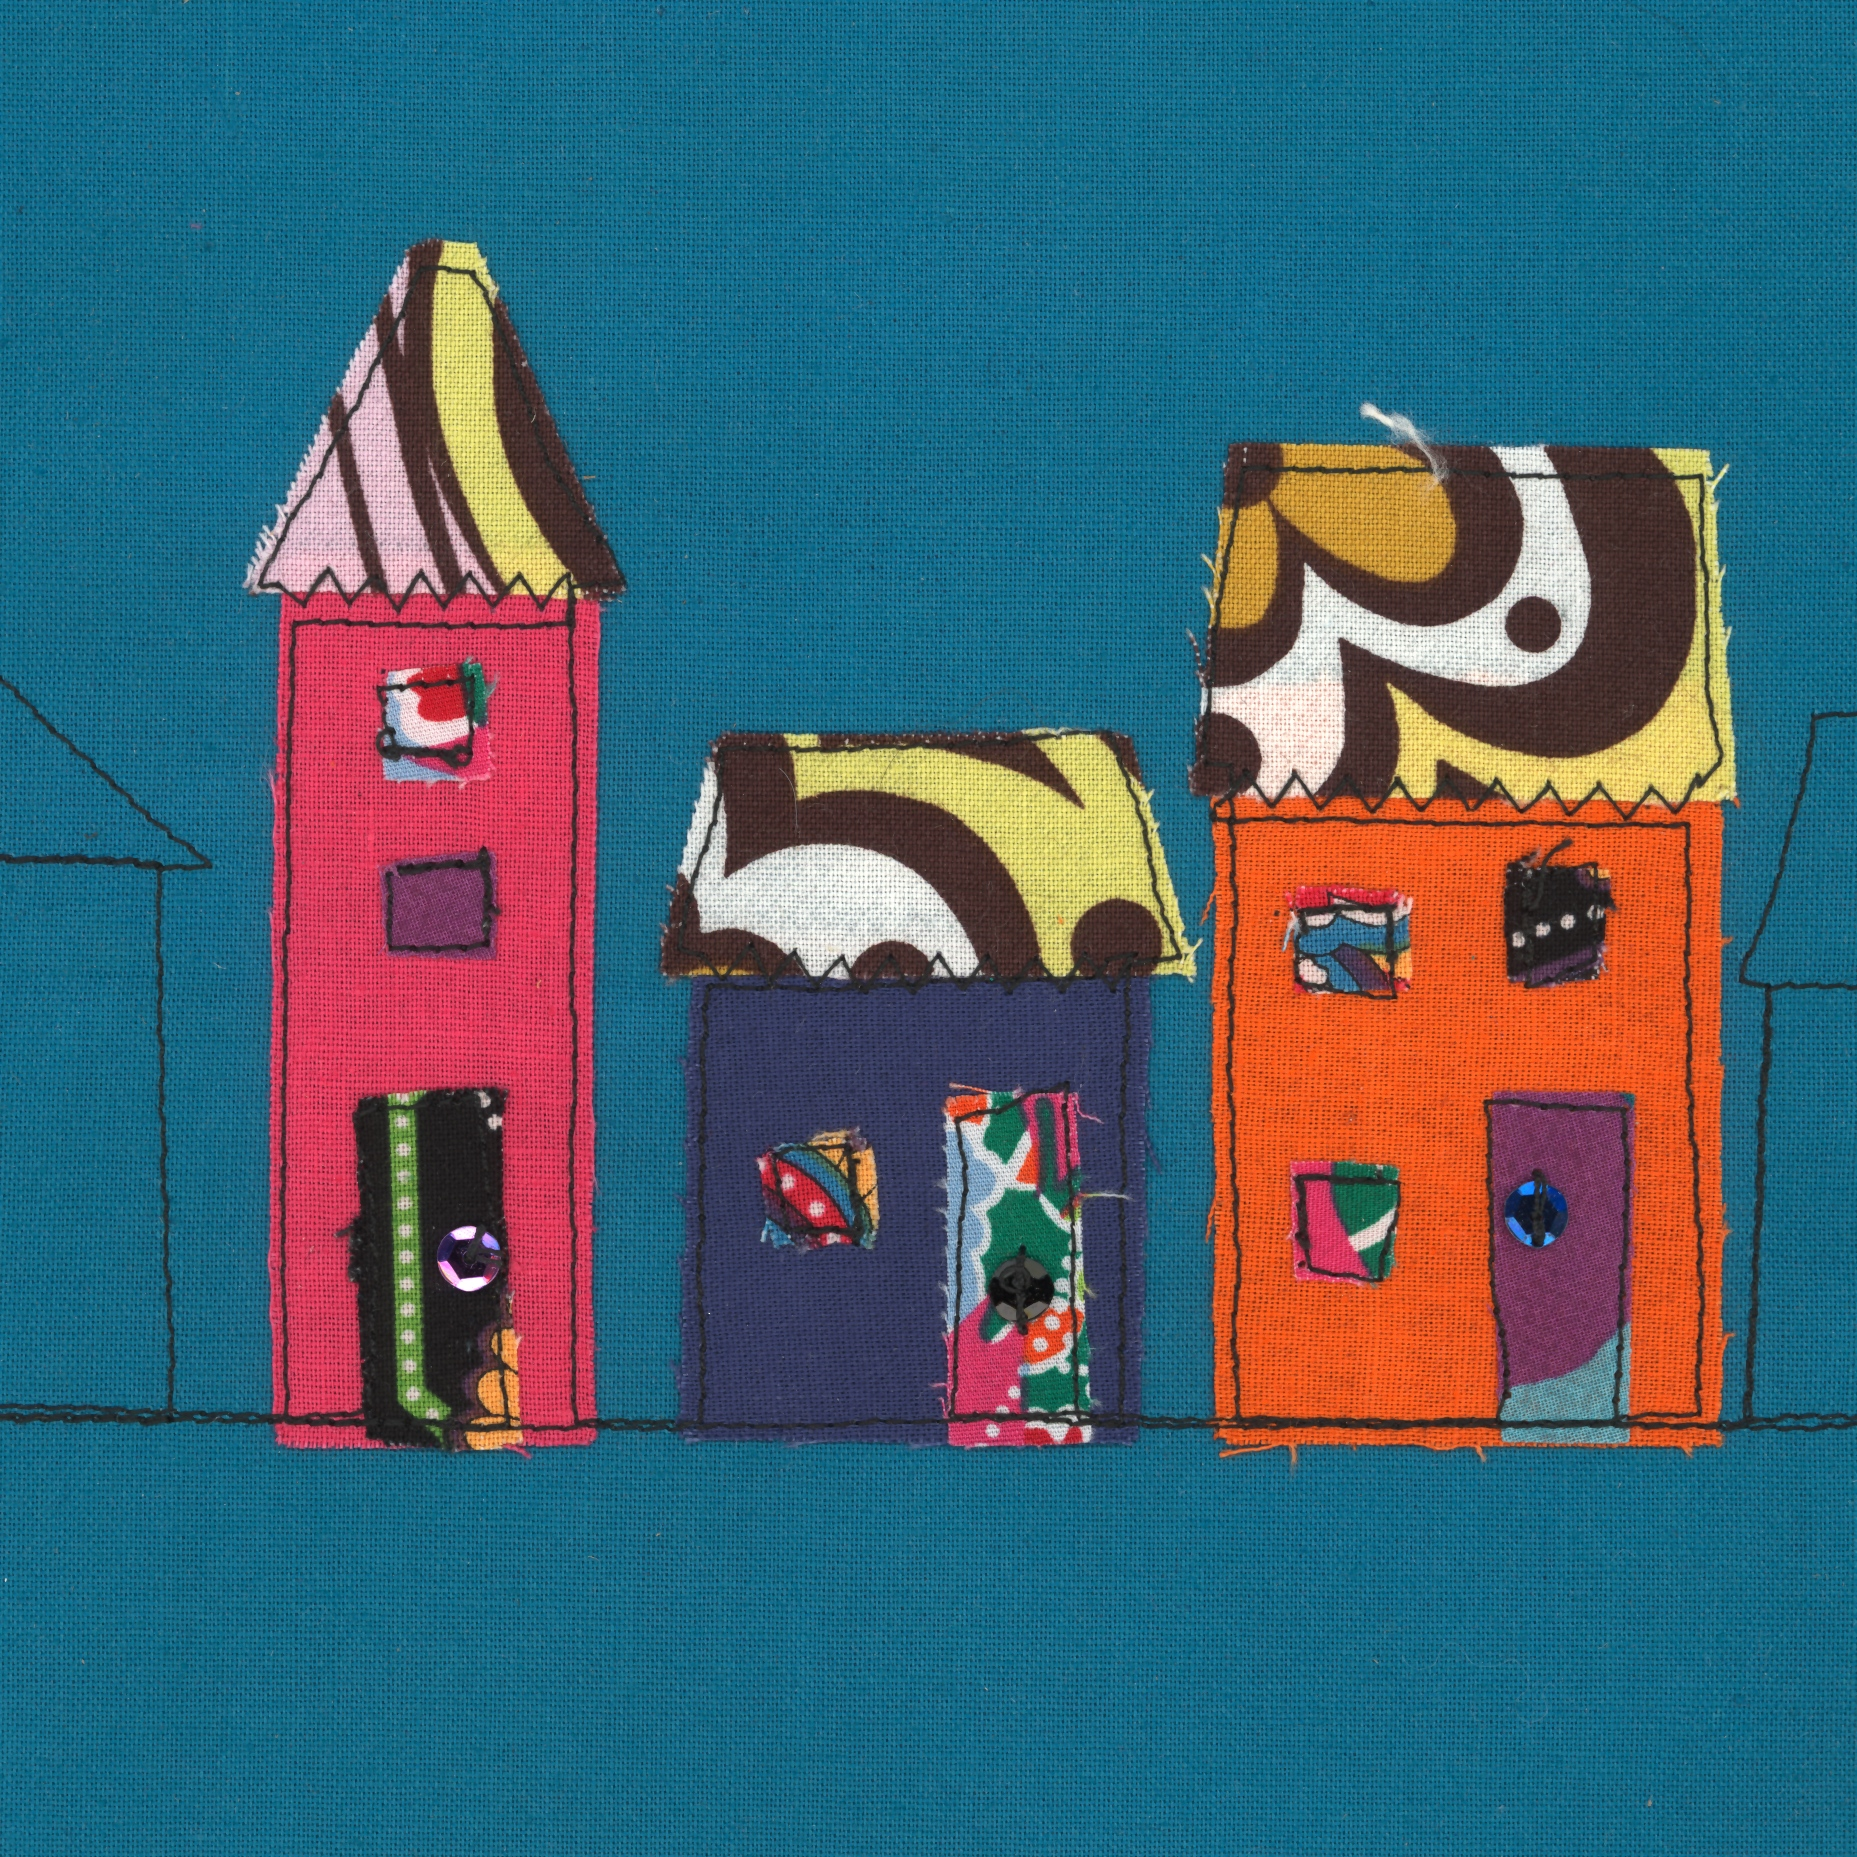 Our House - £25 +p&p